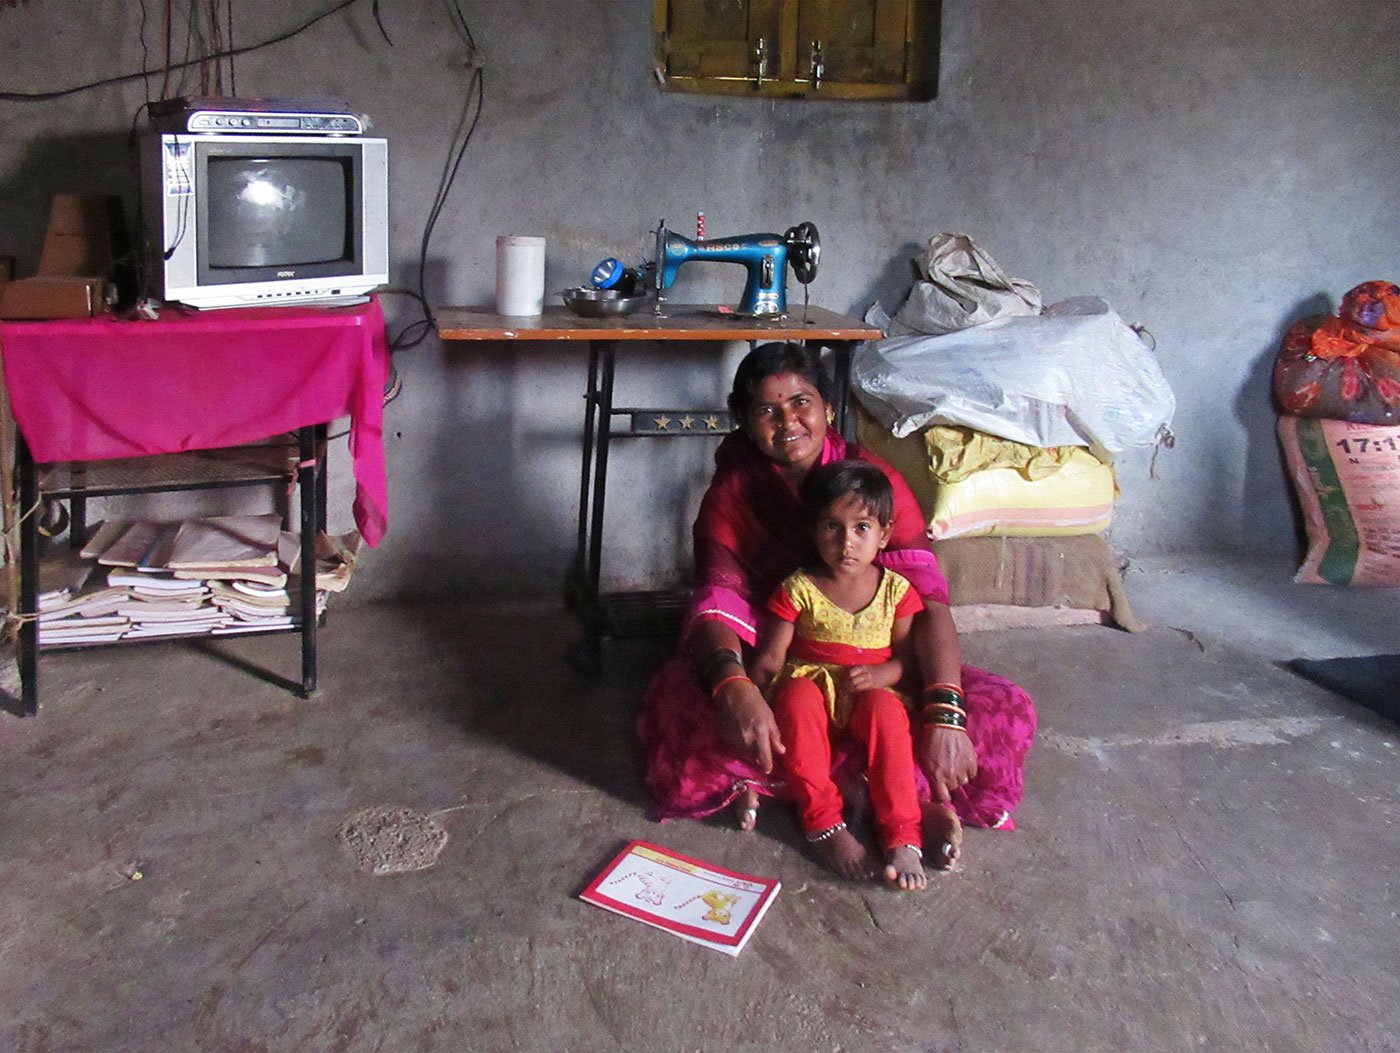 A woman sitting on the floor of her home with a young girl in her lap